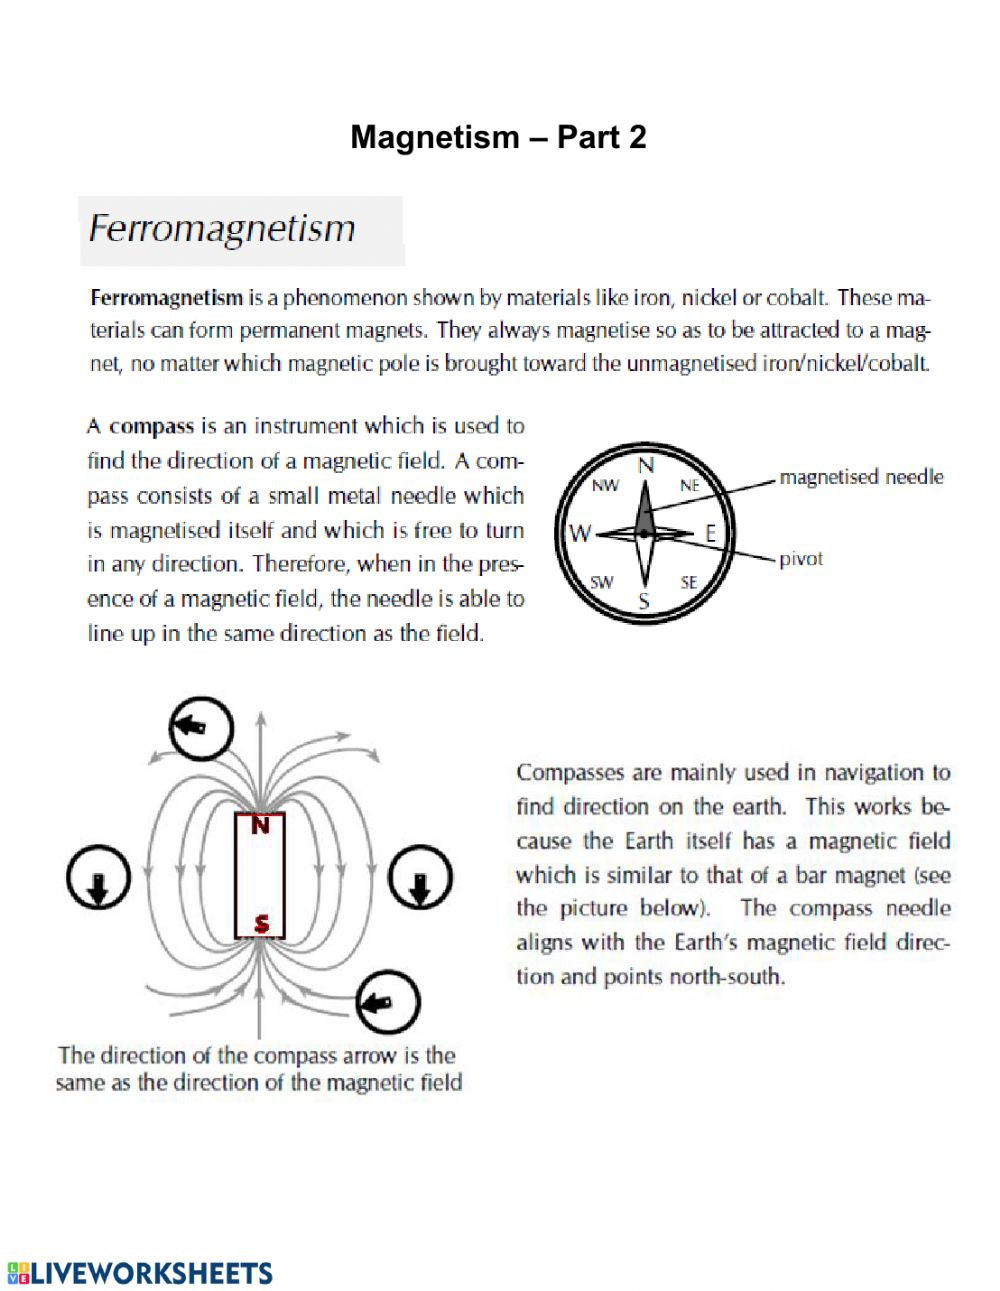 Magnetism Worksheet for High School Magnetism 2 Interactive Worksheet